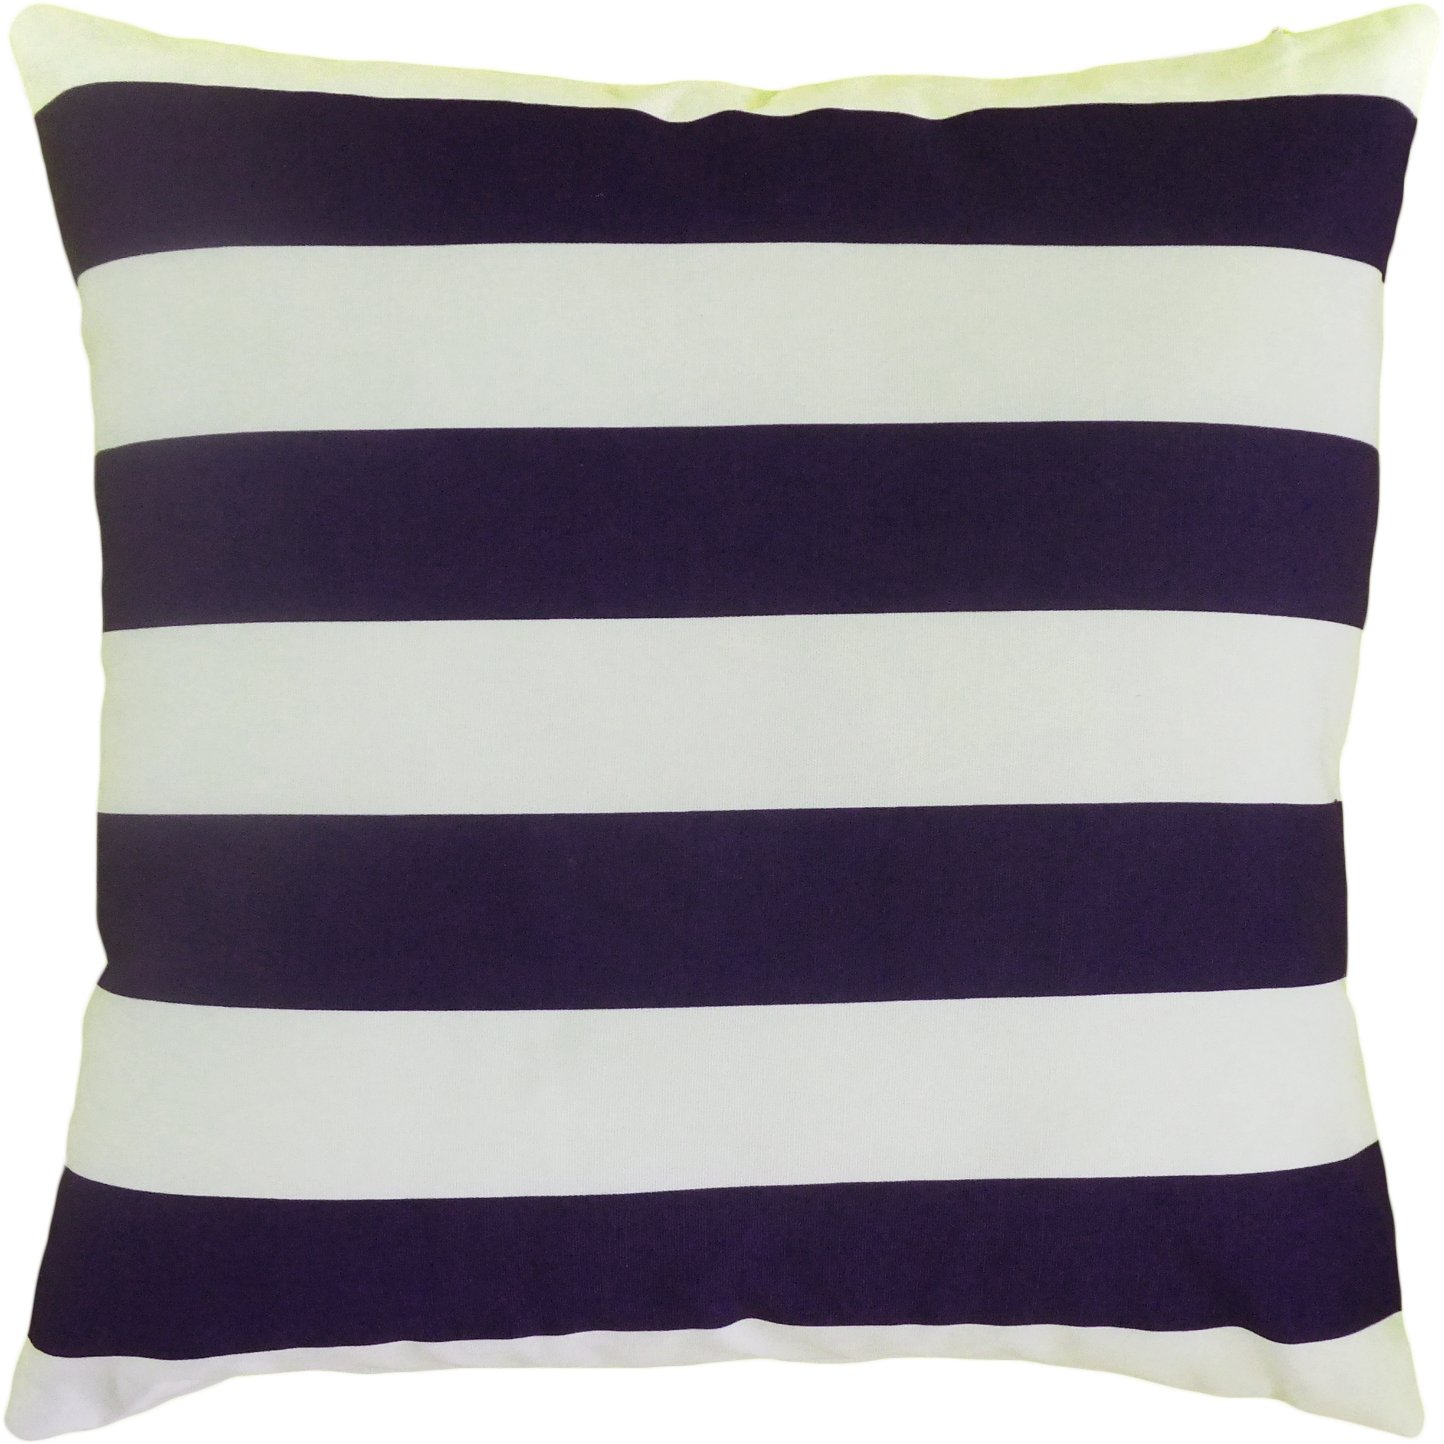 pillows walmart com by novogratz decorative queen ip purple x royals pillow